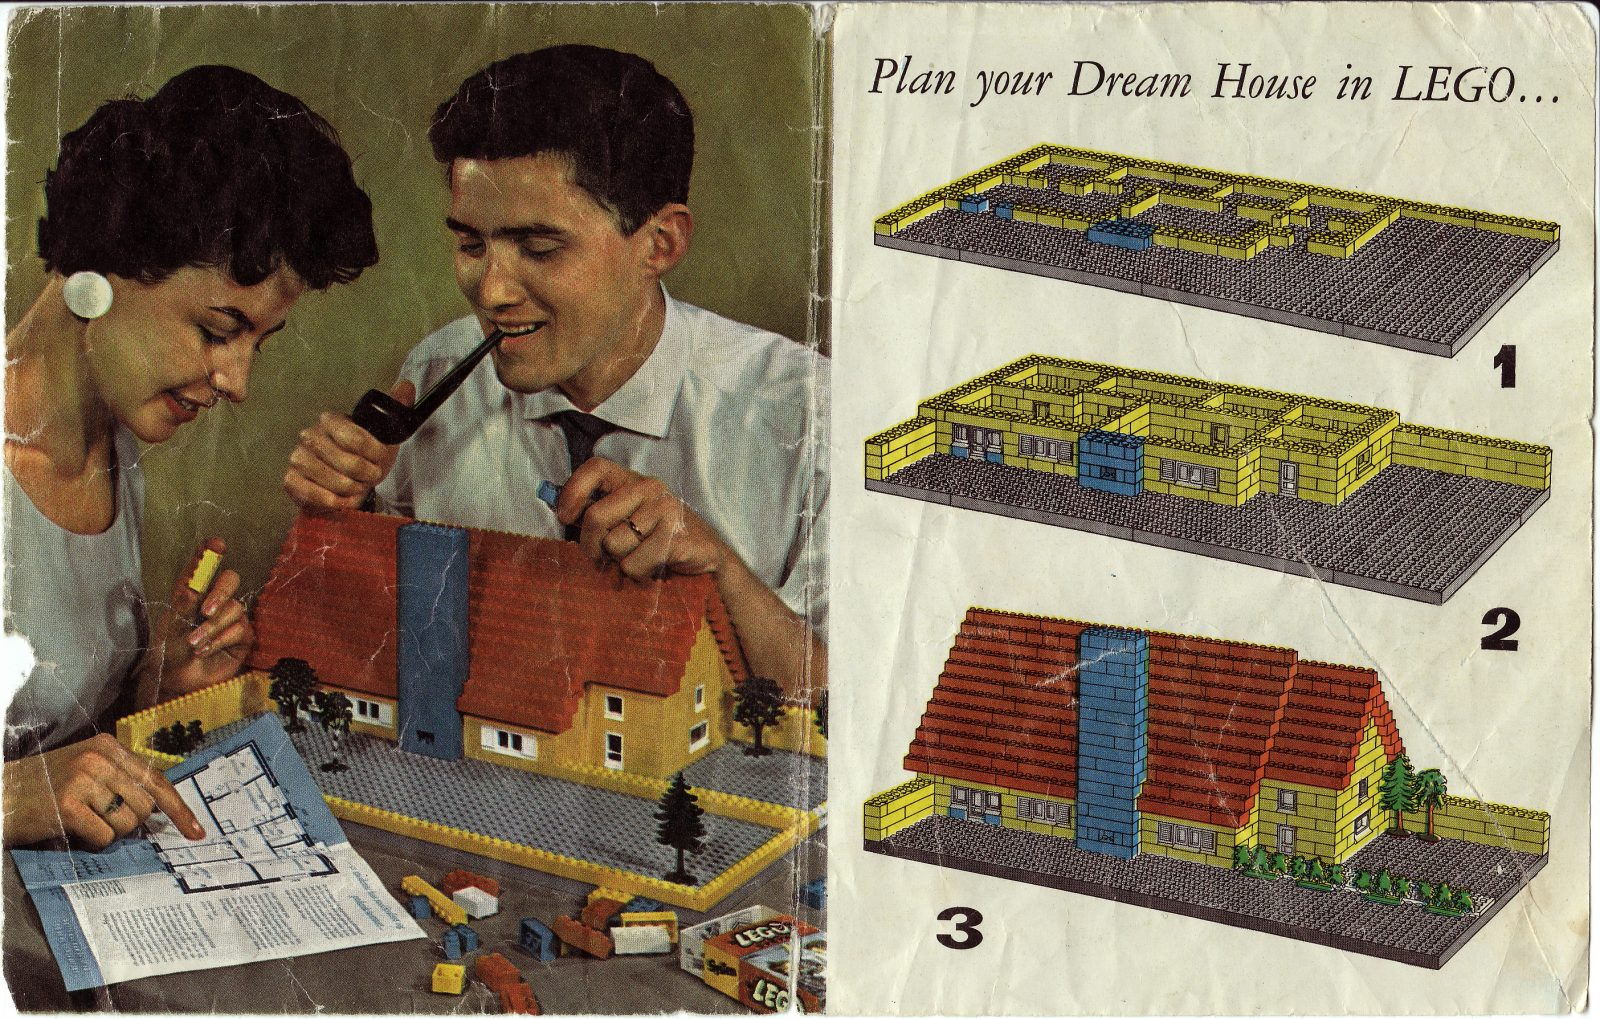 A page from a 1958 booklet filled with suggestions on how to use LEGO